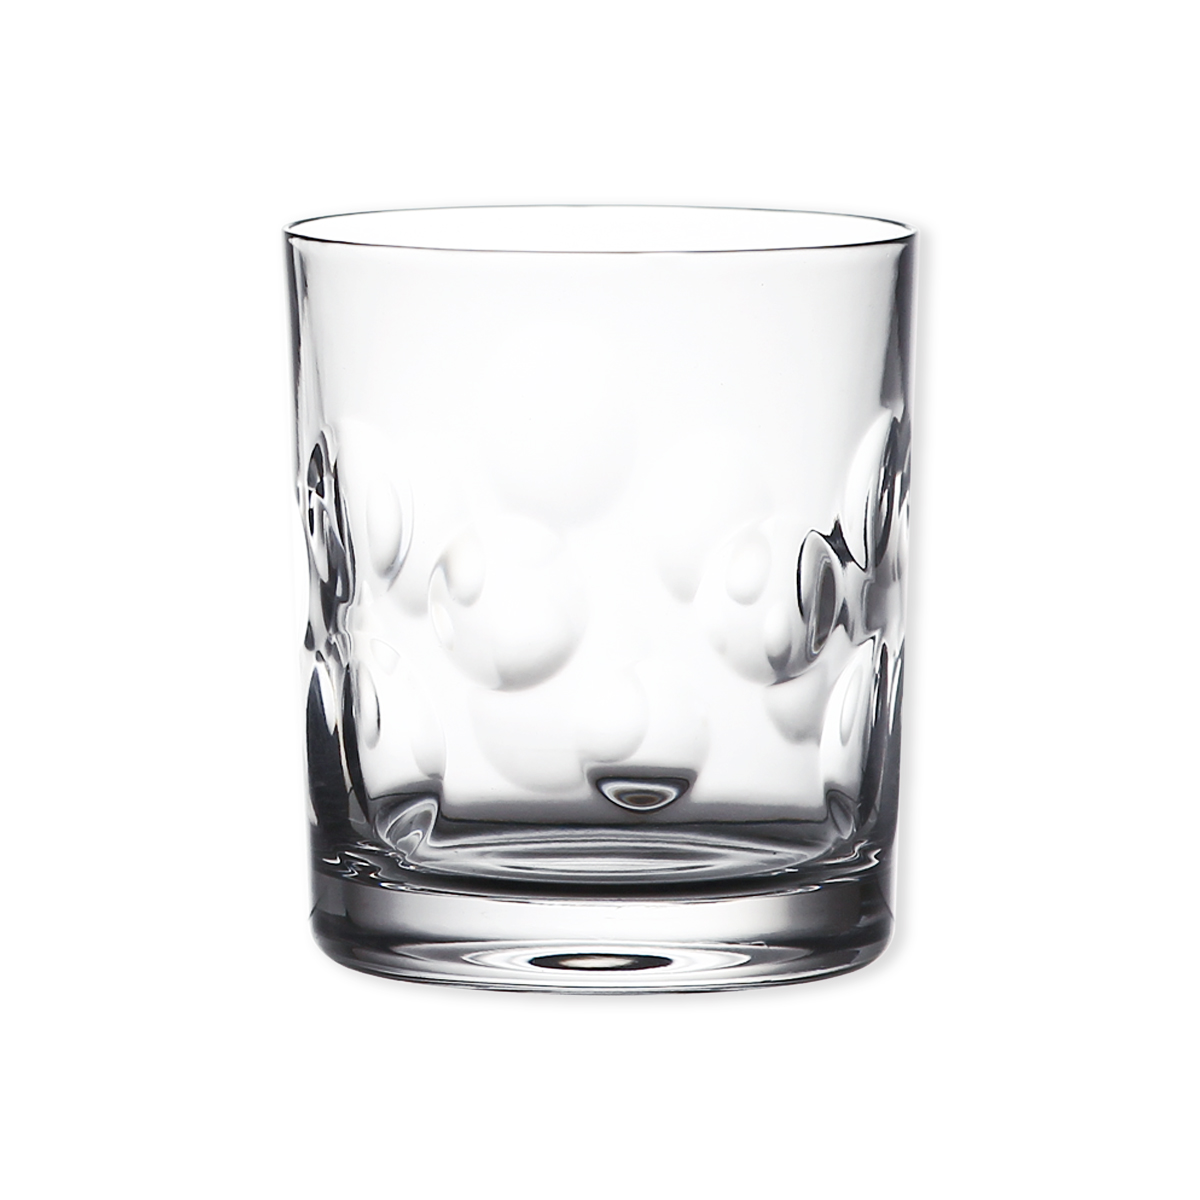 verre whisky en cristal taill 32cl verres design. Black Bedroom Furniture Sets. Home Design Ideas